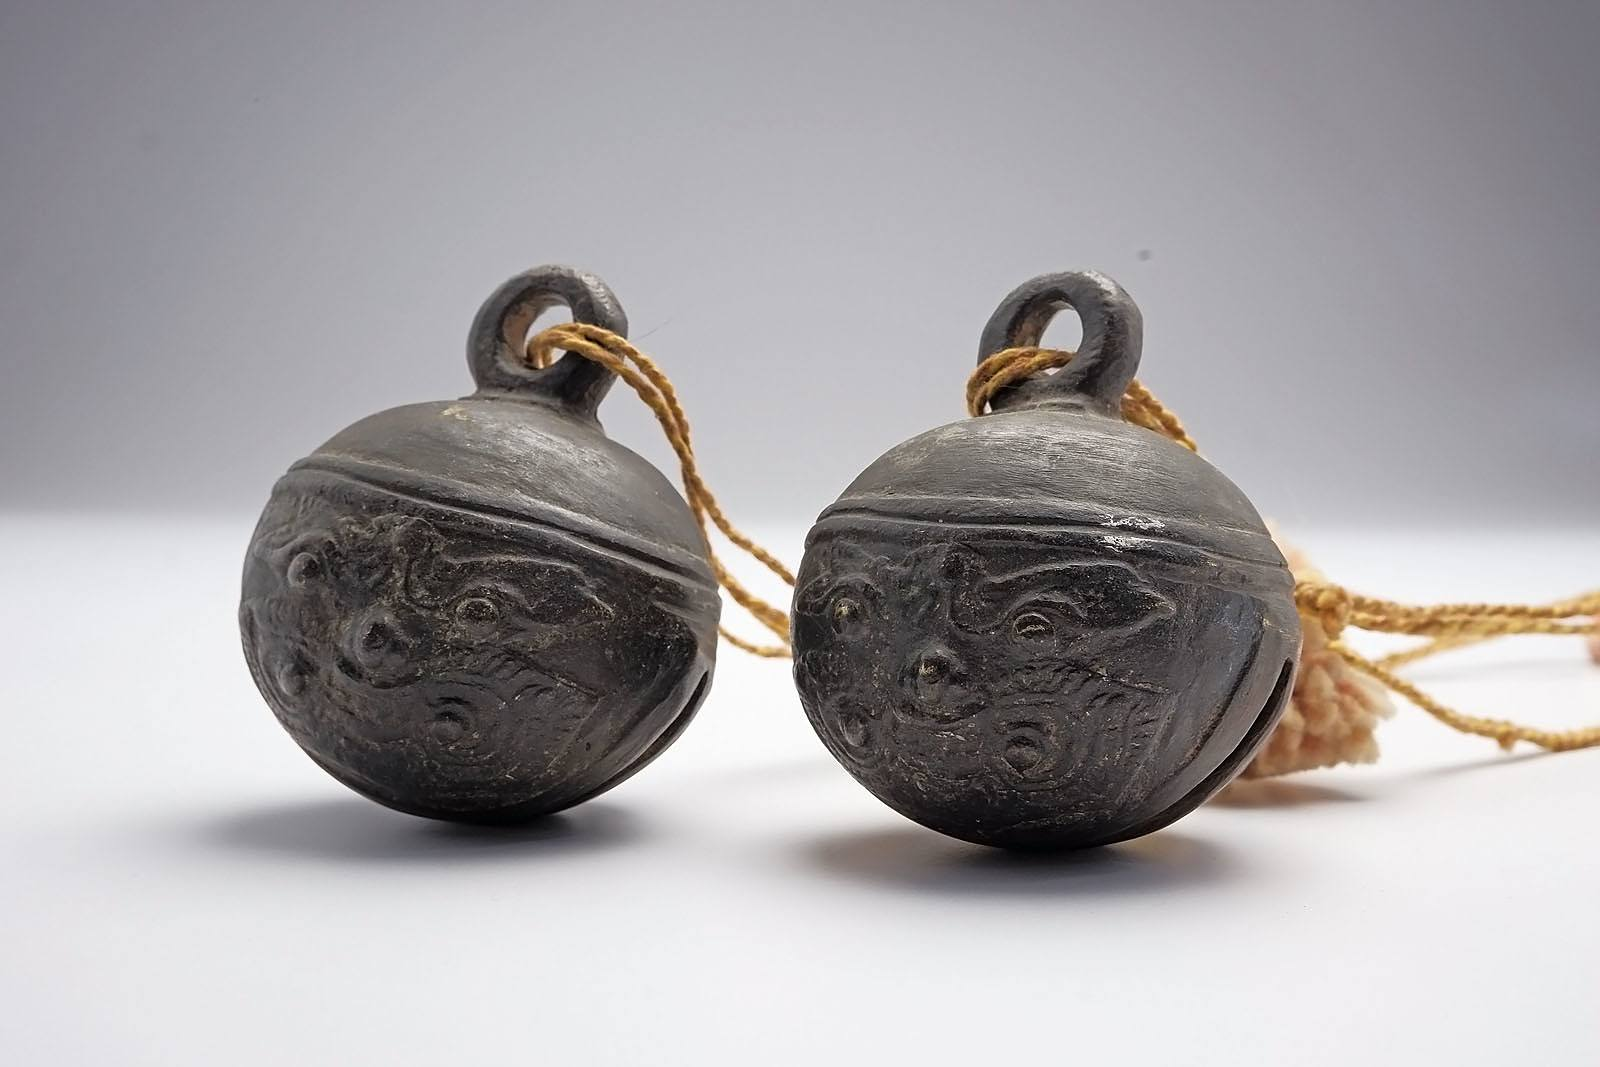 'Two Yunnan South Chinese Bronze Elephant Bells with Taotie Masks, 19th Century'